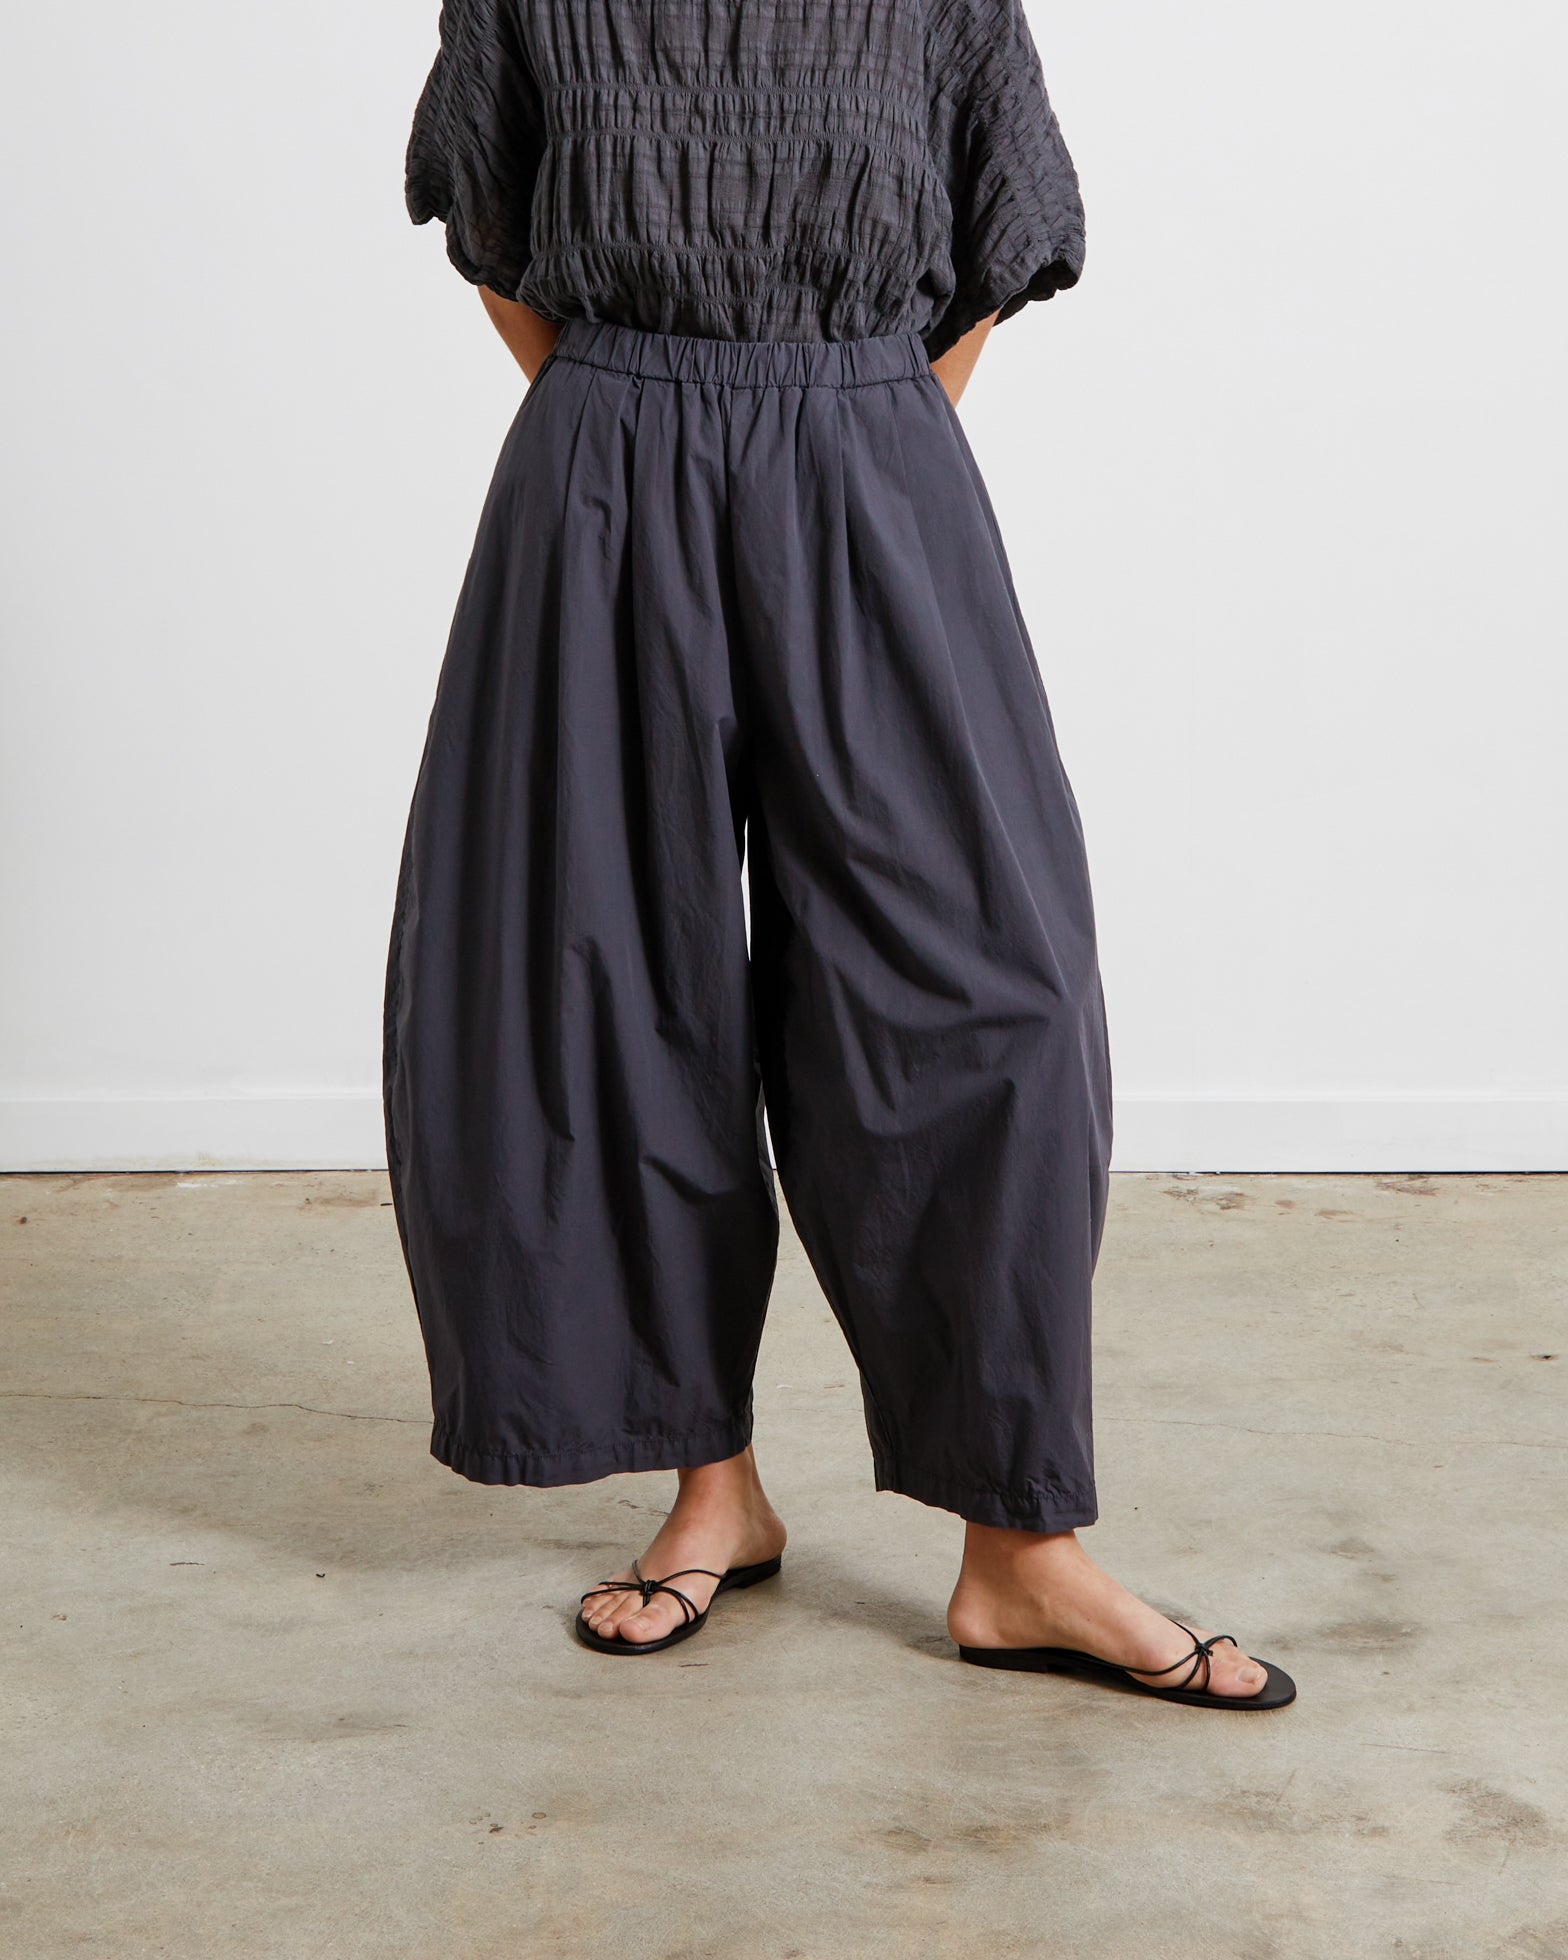 Mohawk General Store | Black Crane | Wide Pants in Faded Black